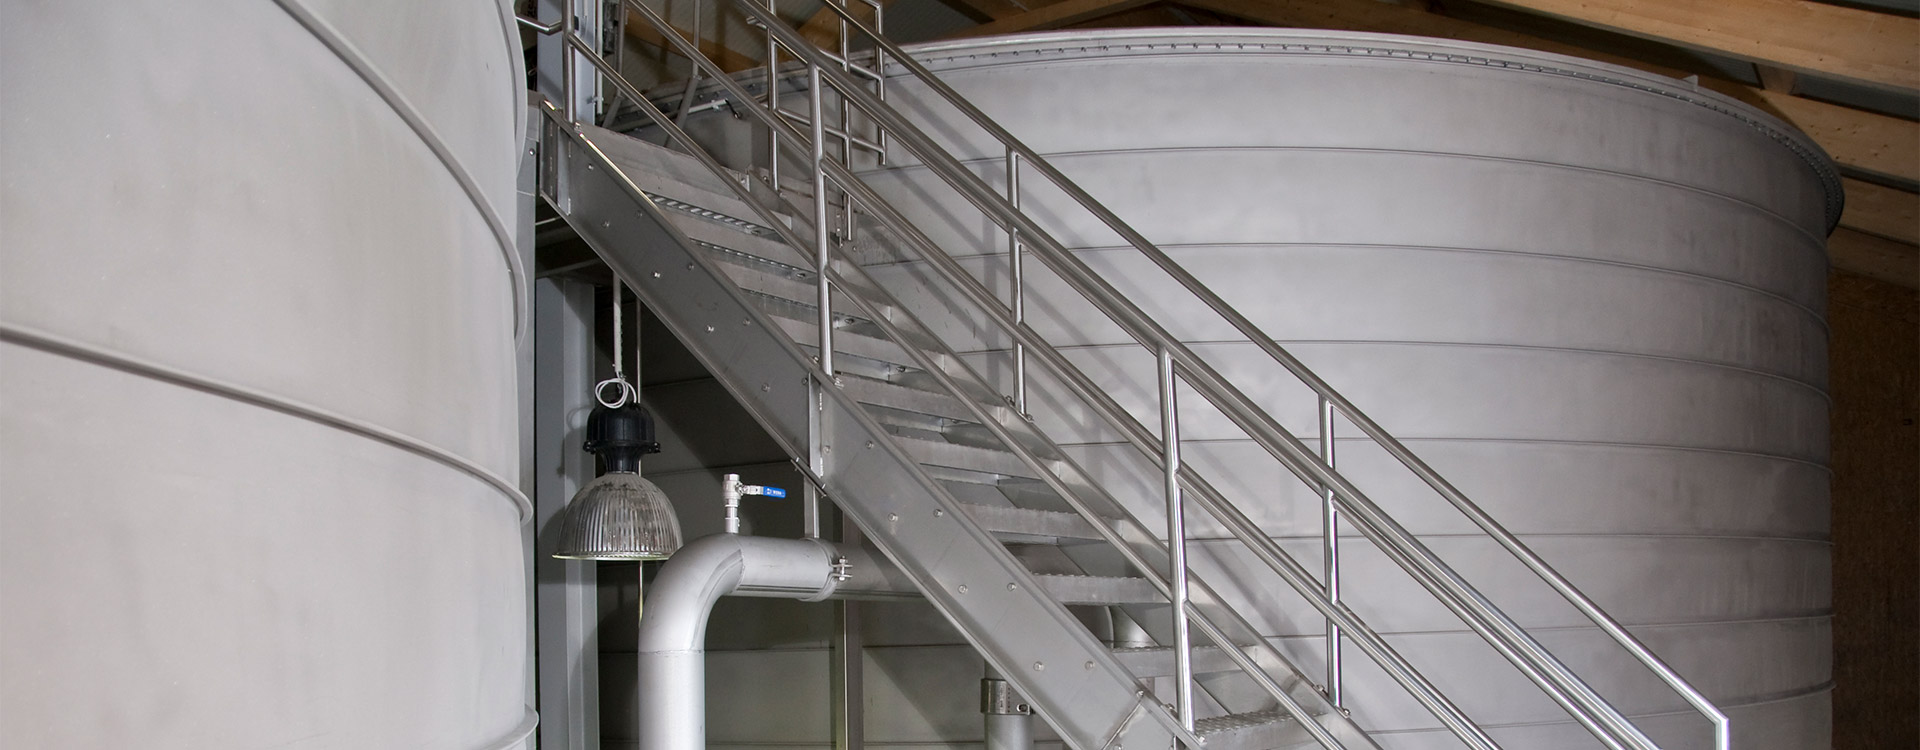 Drinking Water Plant - Lipp System